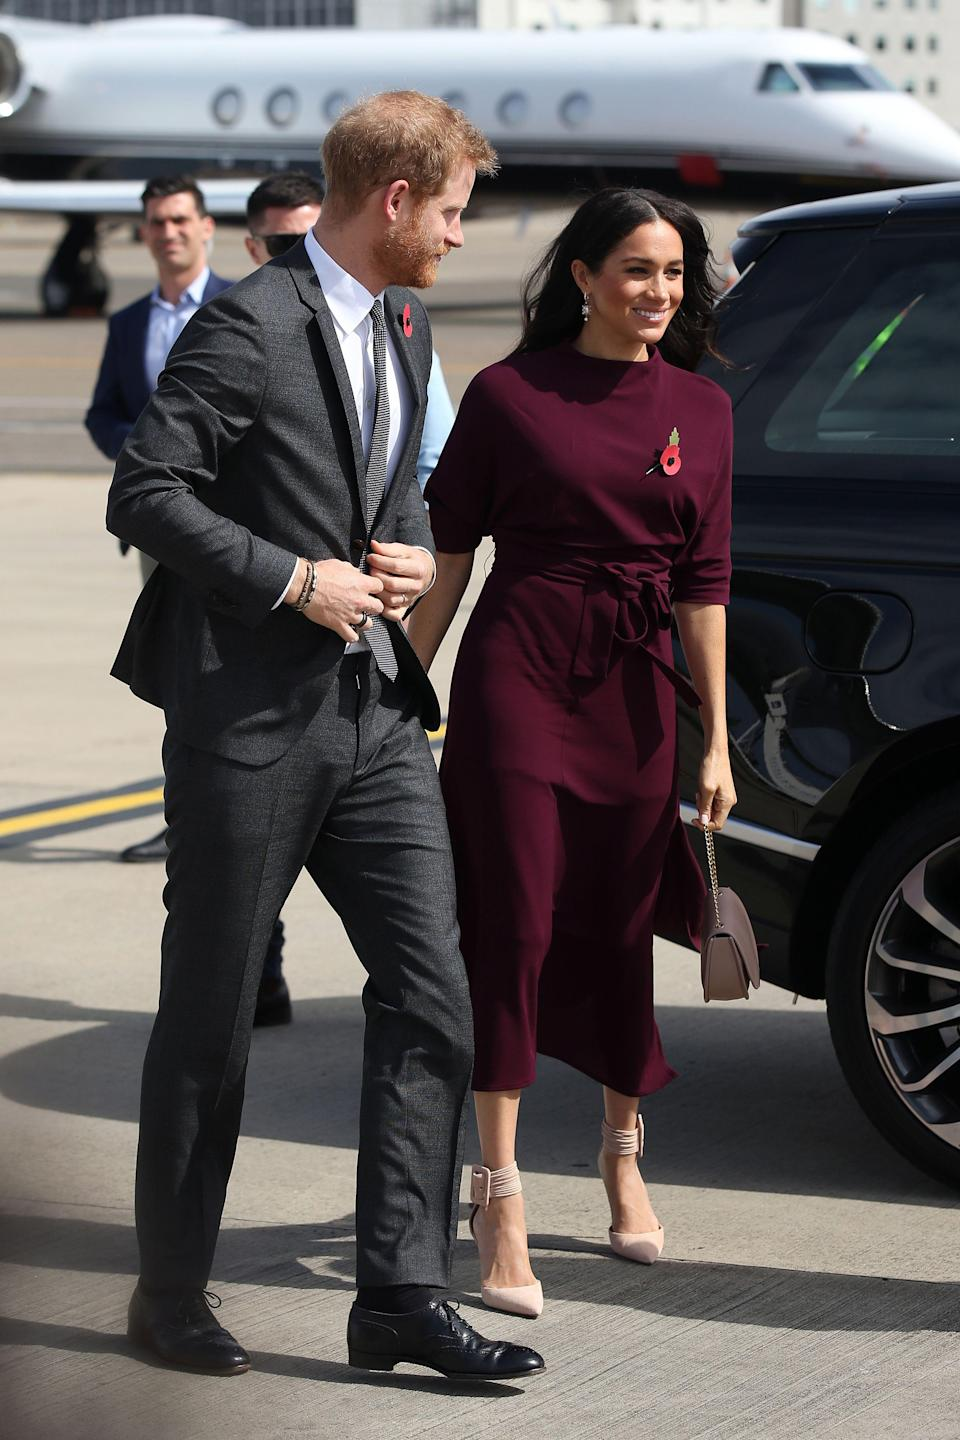 "<p>Ever the chic traveller, Meghan wore a £249 Hugo Boss <a href=""https://www.hugoboss.com/uk/slim-fit-dress-in-soft-jersey-with-detachable-belt/4029049659730.html?gclid=CjwKCAjwmdDeBRA8EiwAXlarFkvy4fNgIW0KHOqep_etwdTAUvkw4z7IOyxiqkgag1-uXxTHOsF5XBoCsnkQAvD_BwE&awc=3767_1540828613_576abe11bbac8135e80a0ee53d87aeac&utm_source=affiliatewindow&utm_medium=affiliate&utm_term=136348&utm_content=home&utm_campaign=season"" rel=""nofollow noopener"" target=""_blank"" data-ylk=""slk:dress"" class=""link rapid-noclick-resp"">dress</a> in a winter-ready berry hue for their departure from Sydney airport. <em>[Photo: Getty]</em> </p>"